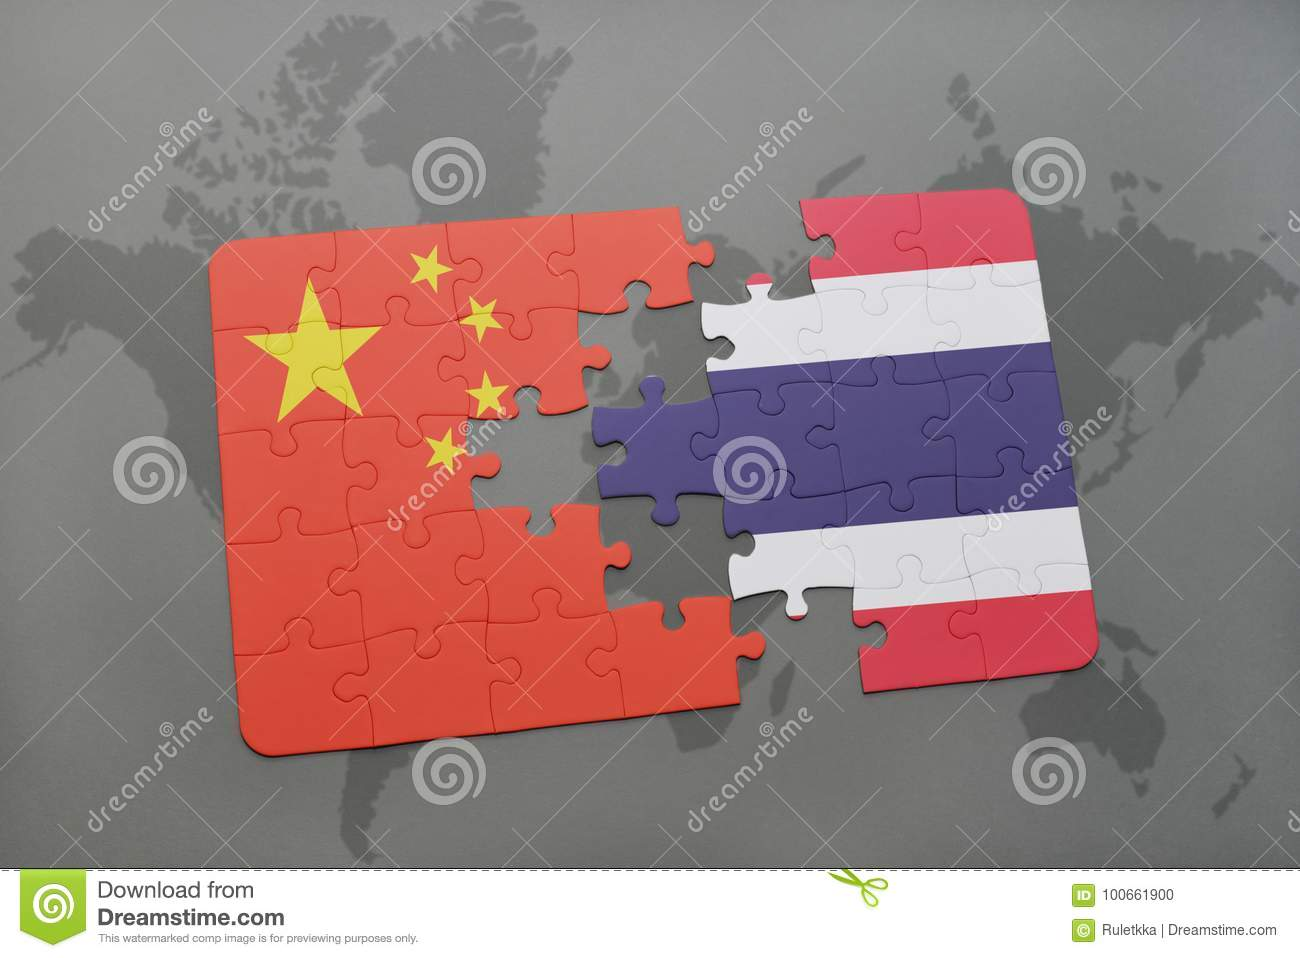 Puzzle with the national flag of china and thailand on a world map download puzzle with the national flag of china and thailand on a world map background gumiabroncs Gallery